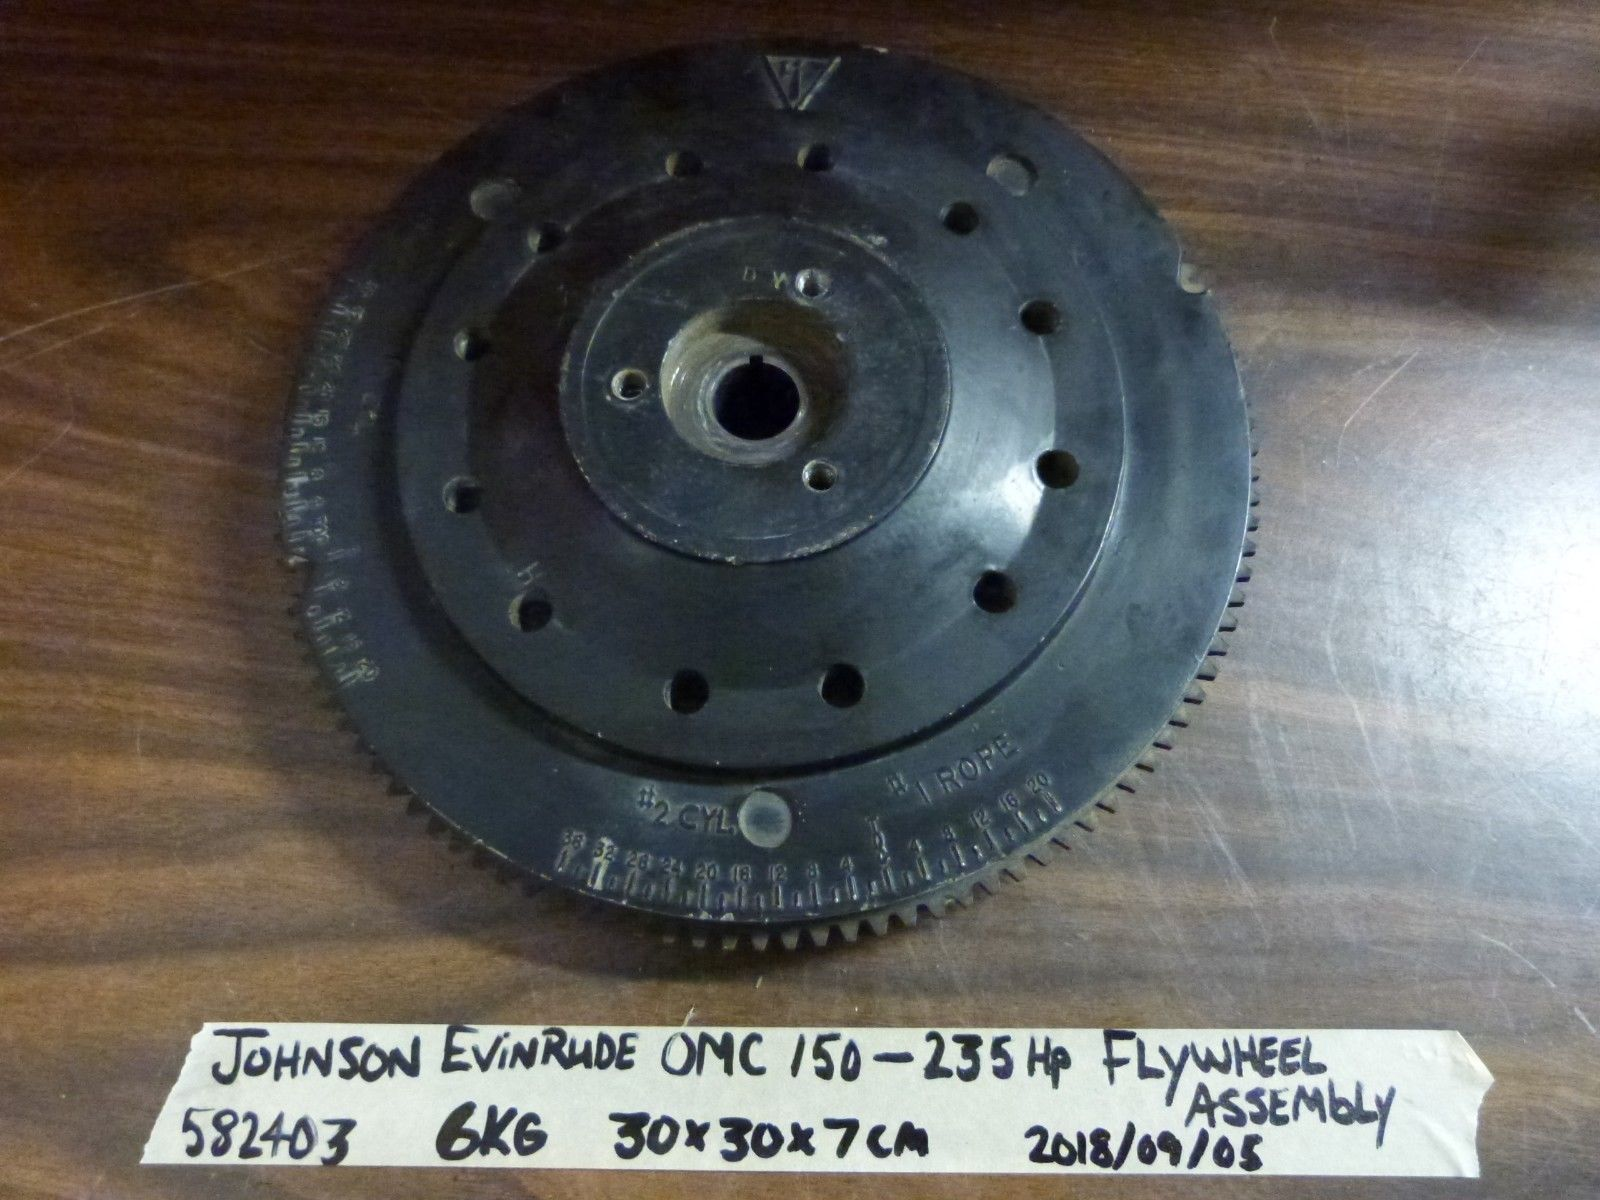 Johnson Evinrude OMC 150 155 175 185 200 235HP FLYWHEEL ASSEMBLY